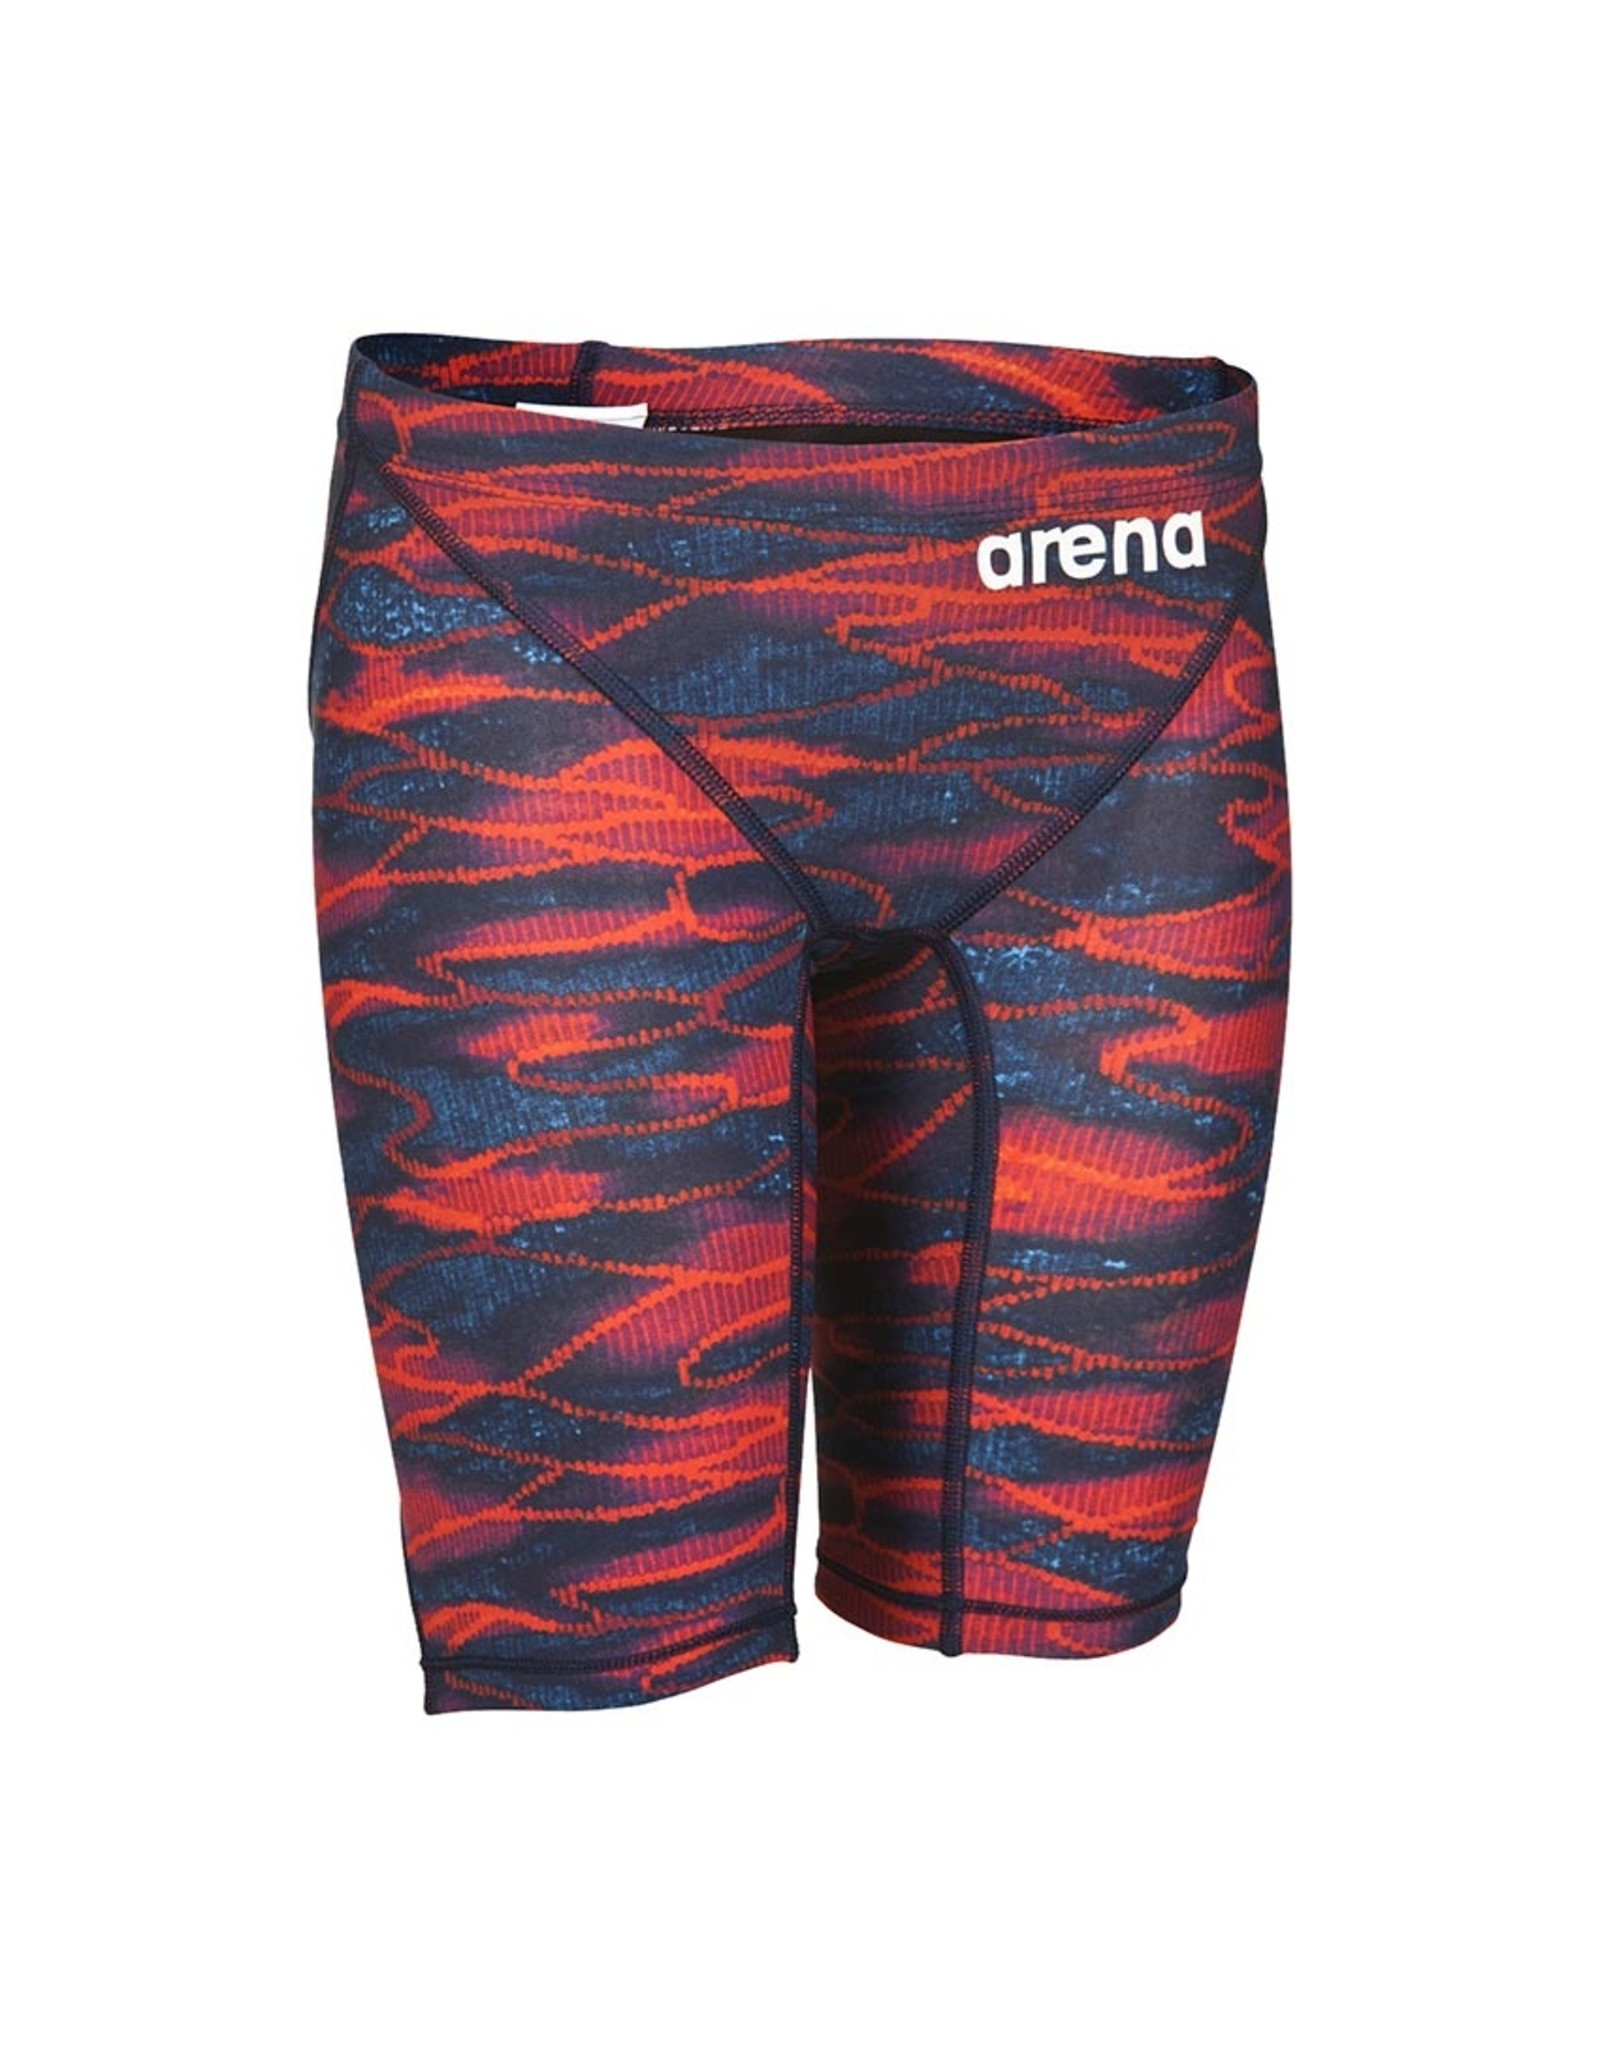 ARENA ARENA POWERSKIN ST 2.0 LIMITED EDITION JAMMER